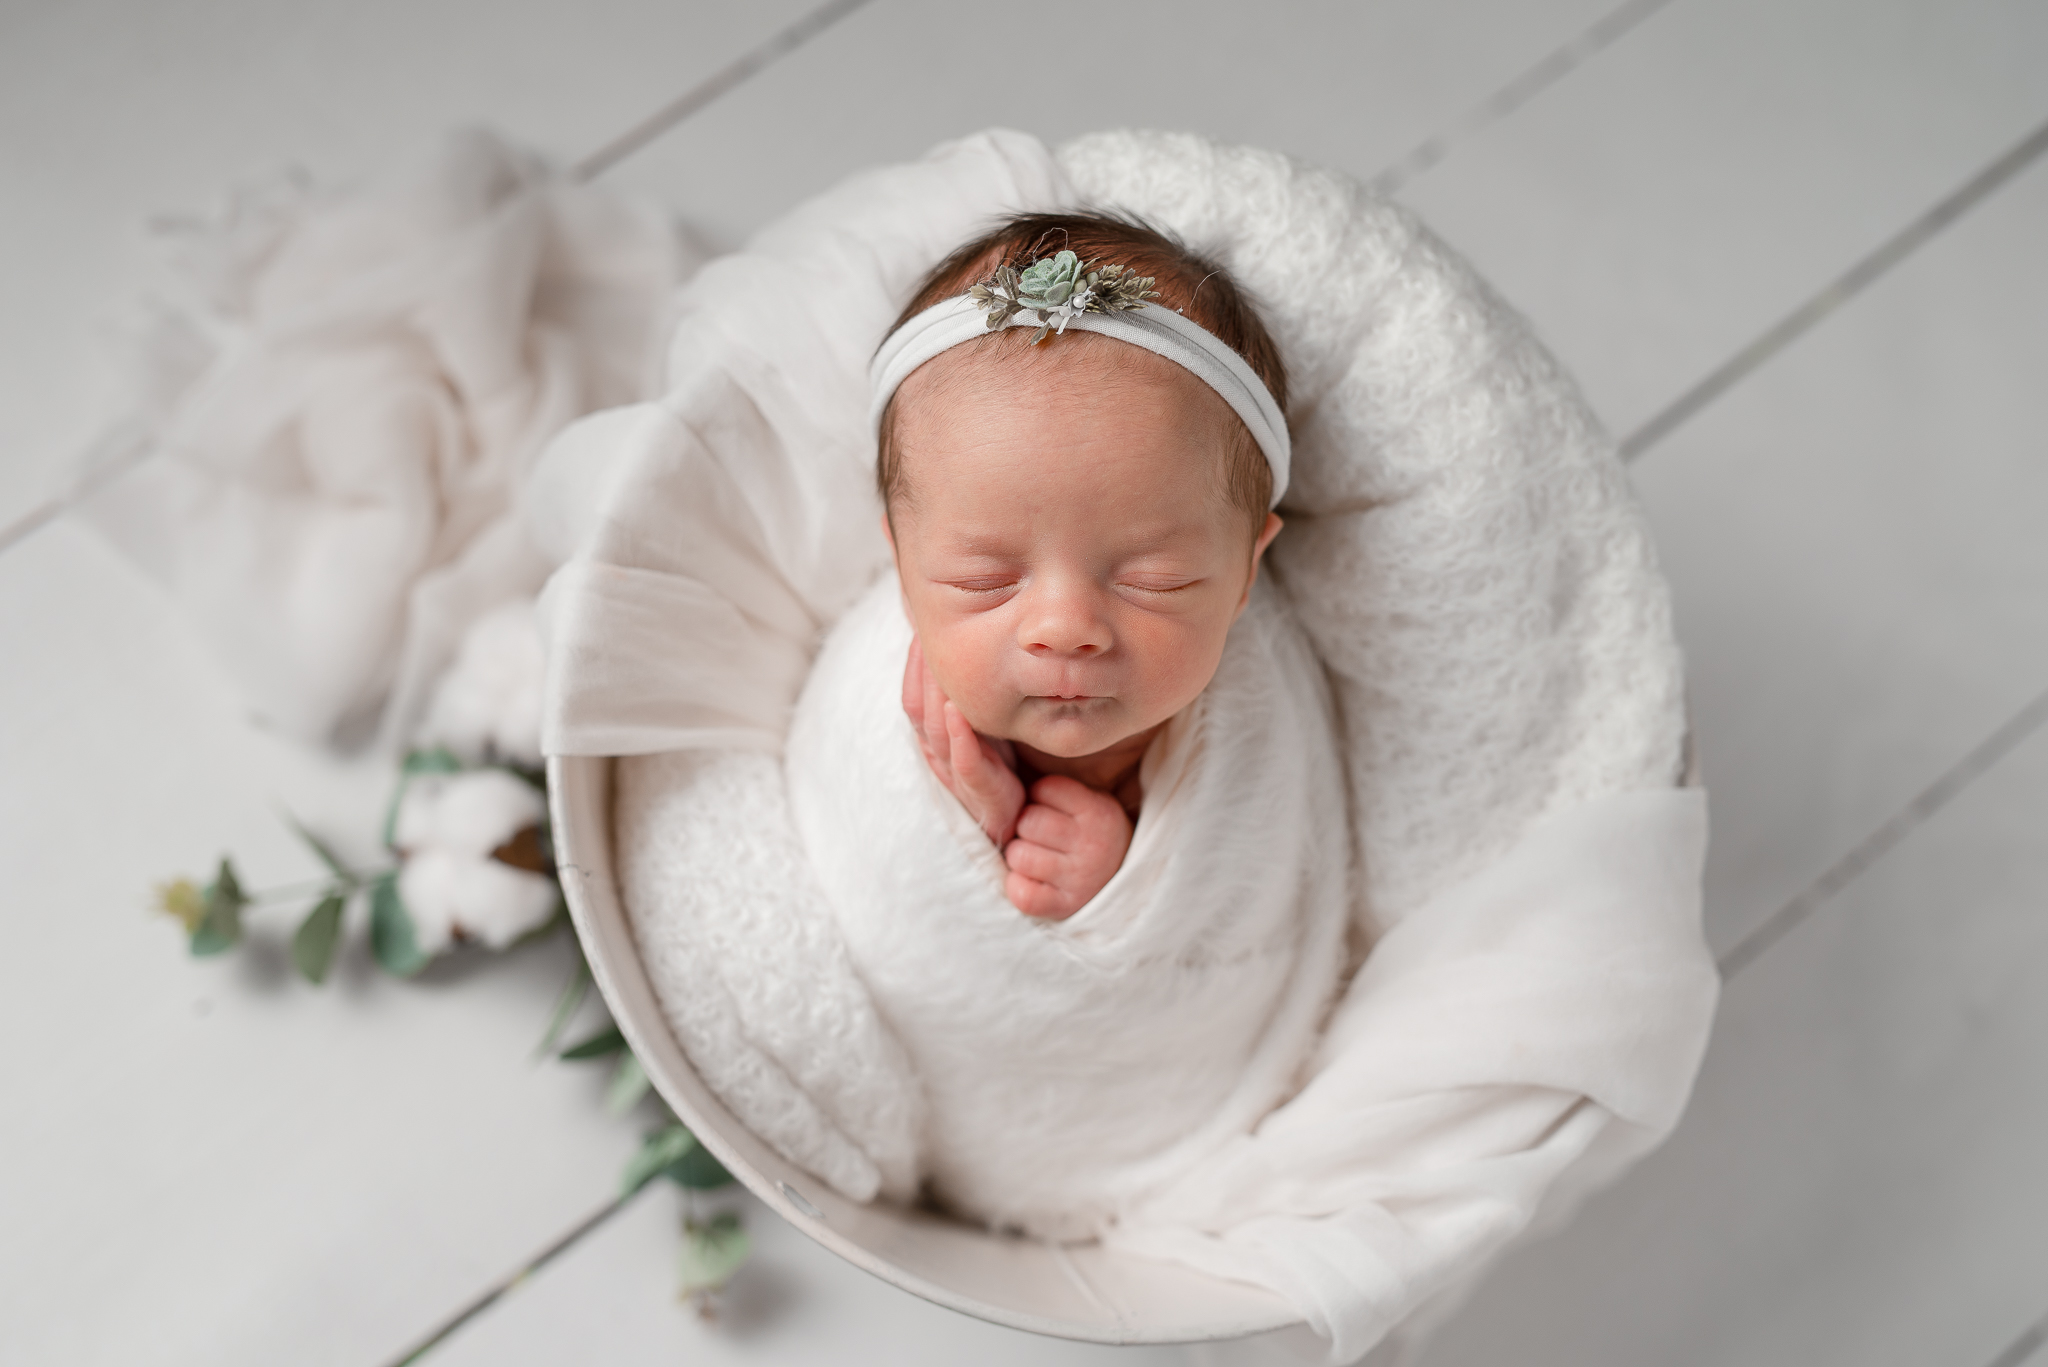 Newborn433NaomiLuciennePhotography032019-Edit.jpg